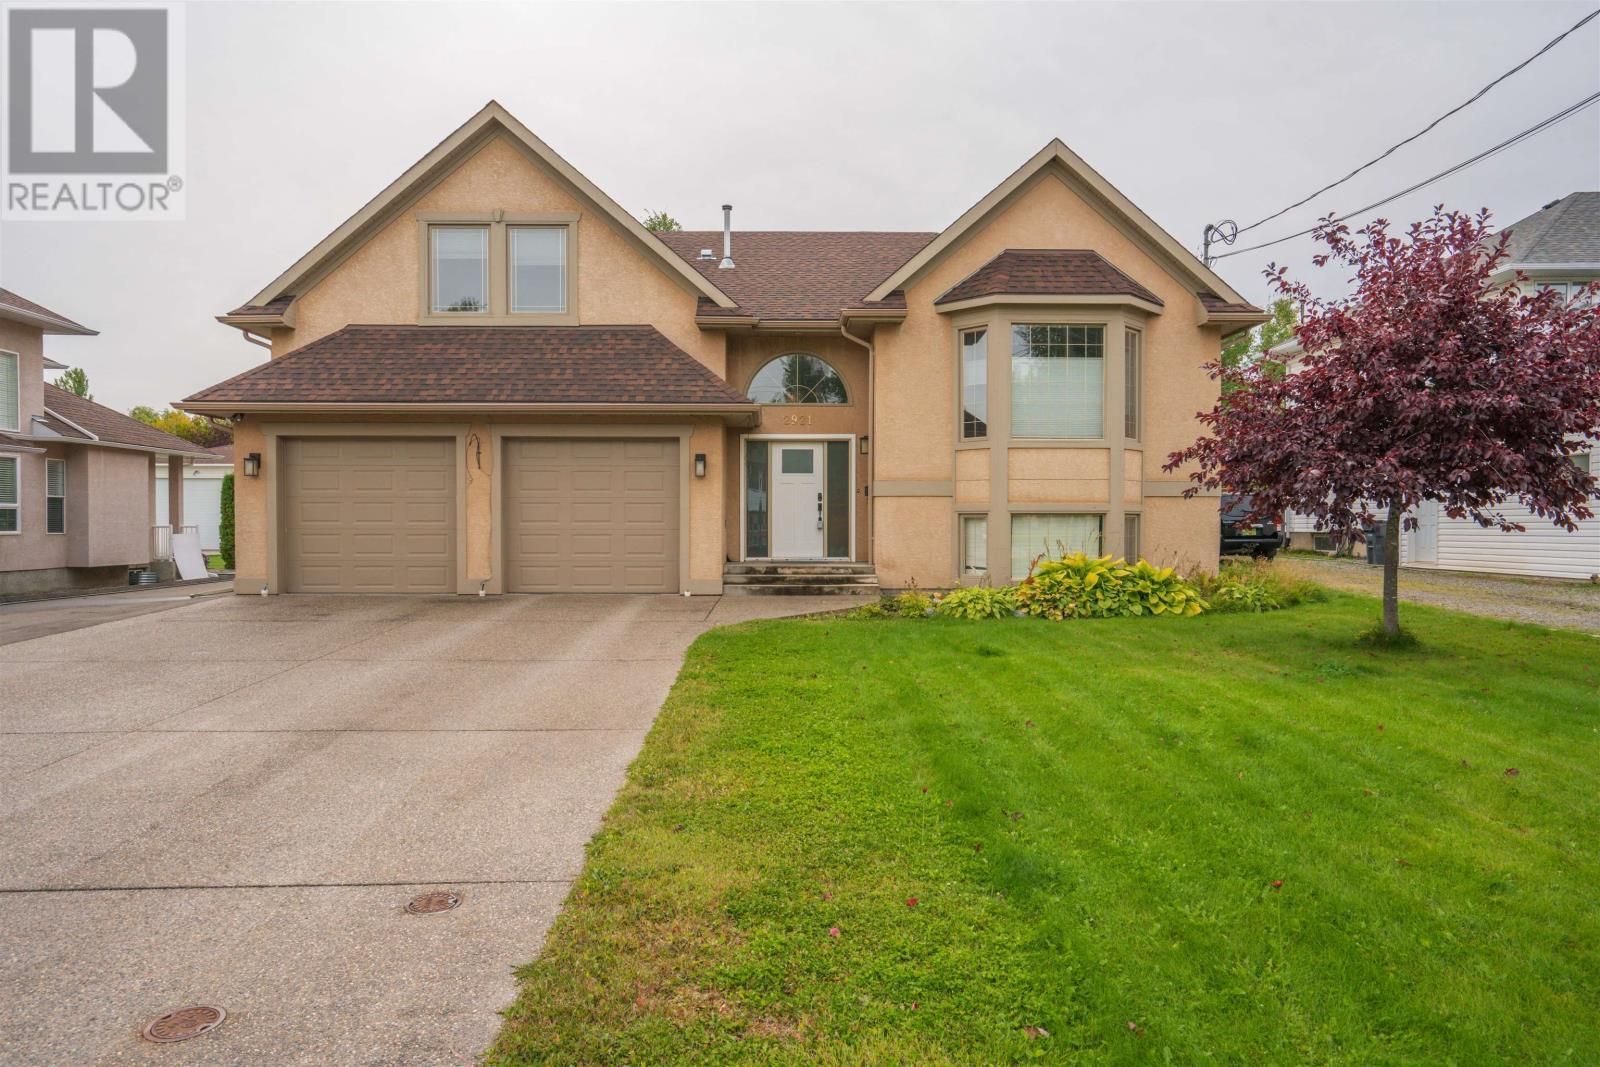 Main Photo: 2921 MARLEAU ROAD in Prince George: House for sale : MLS®# R2619380